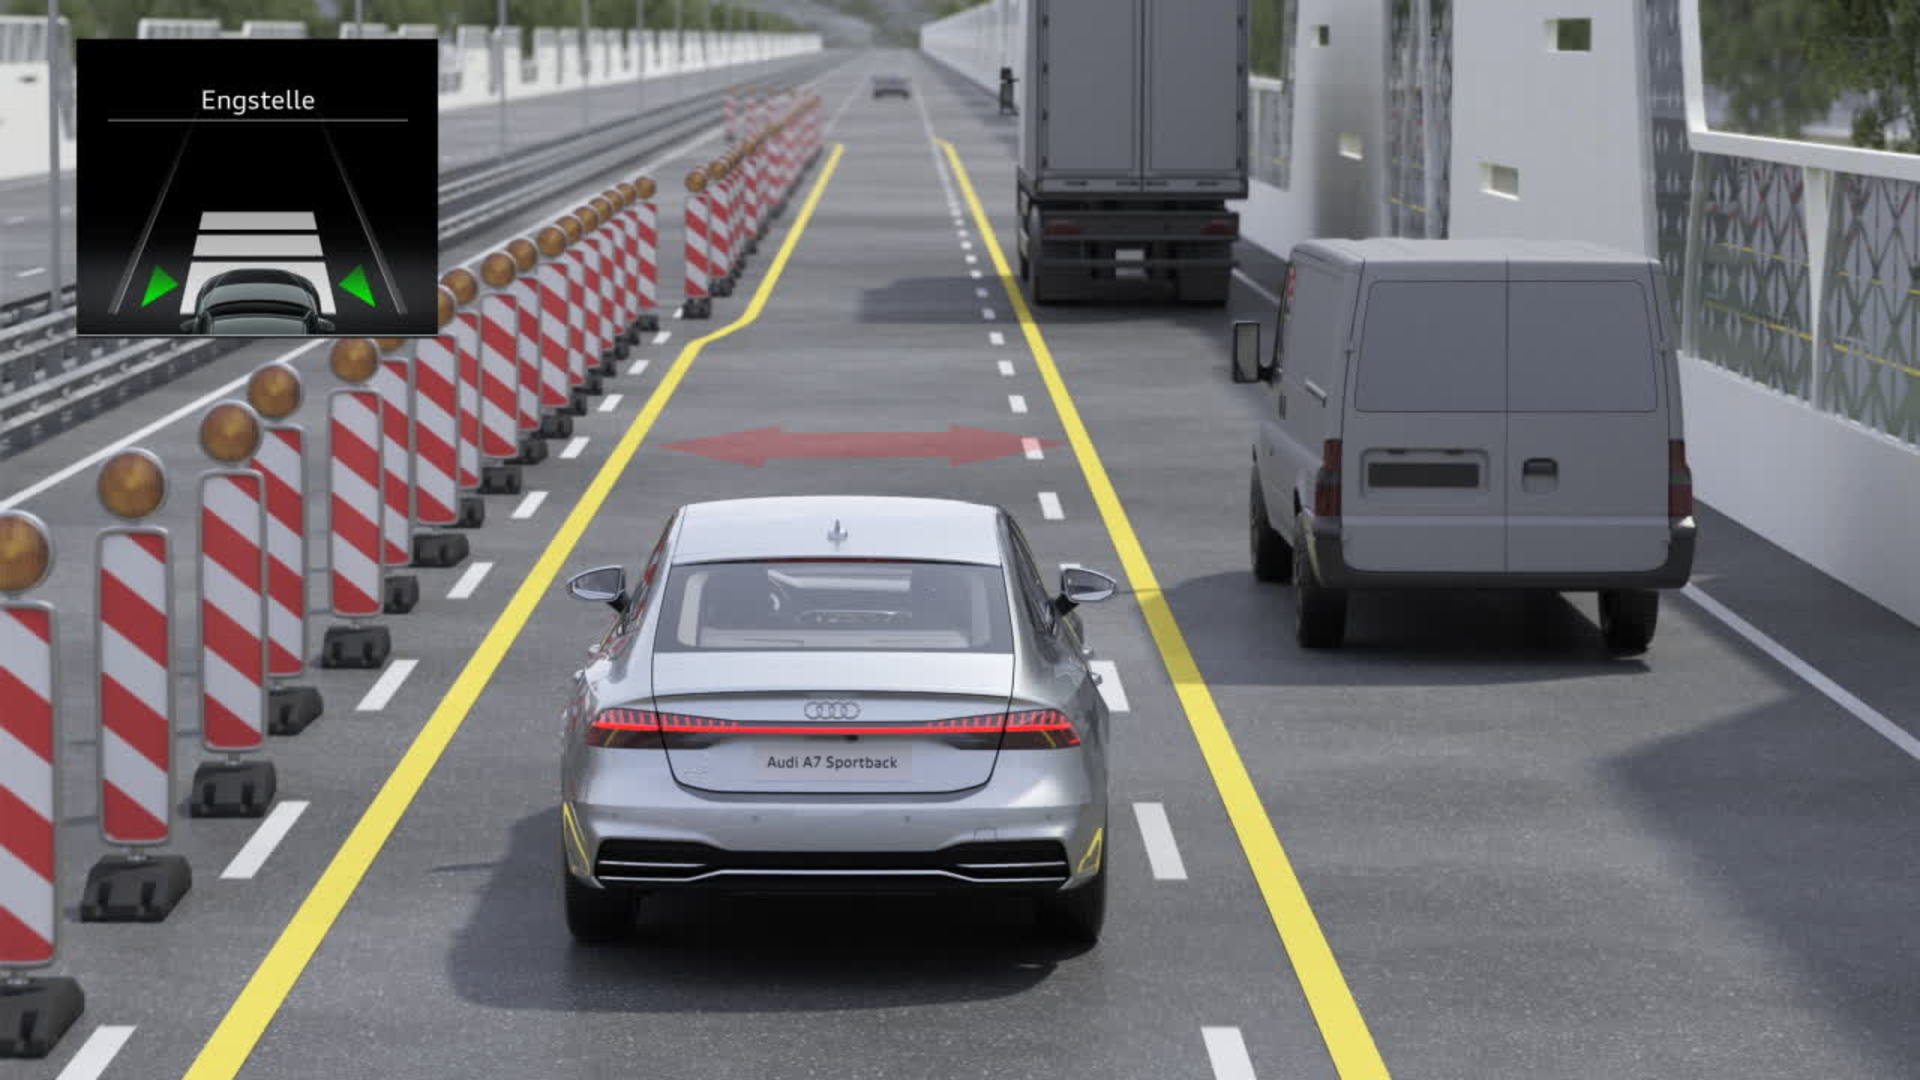 Audi A7 Animation Engstellenassistent